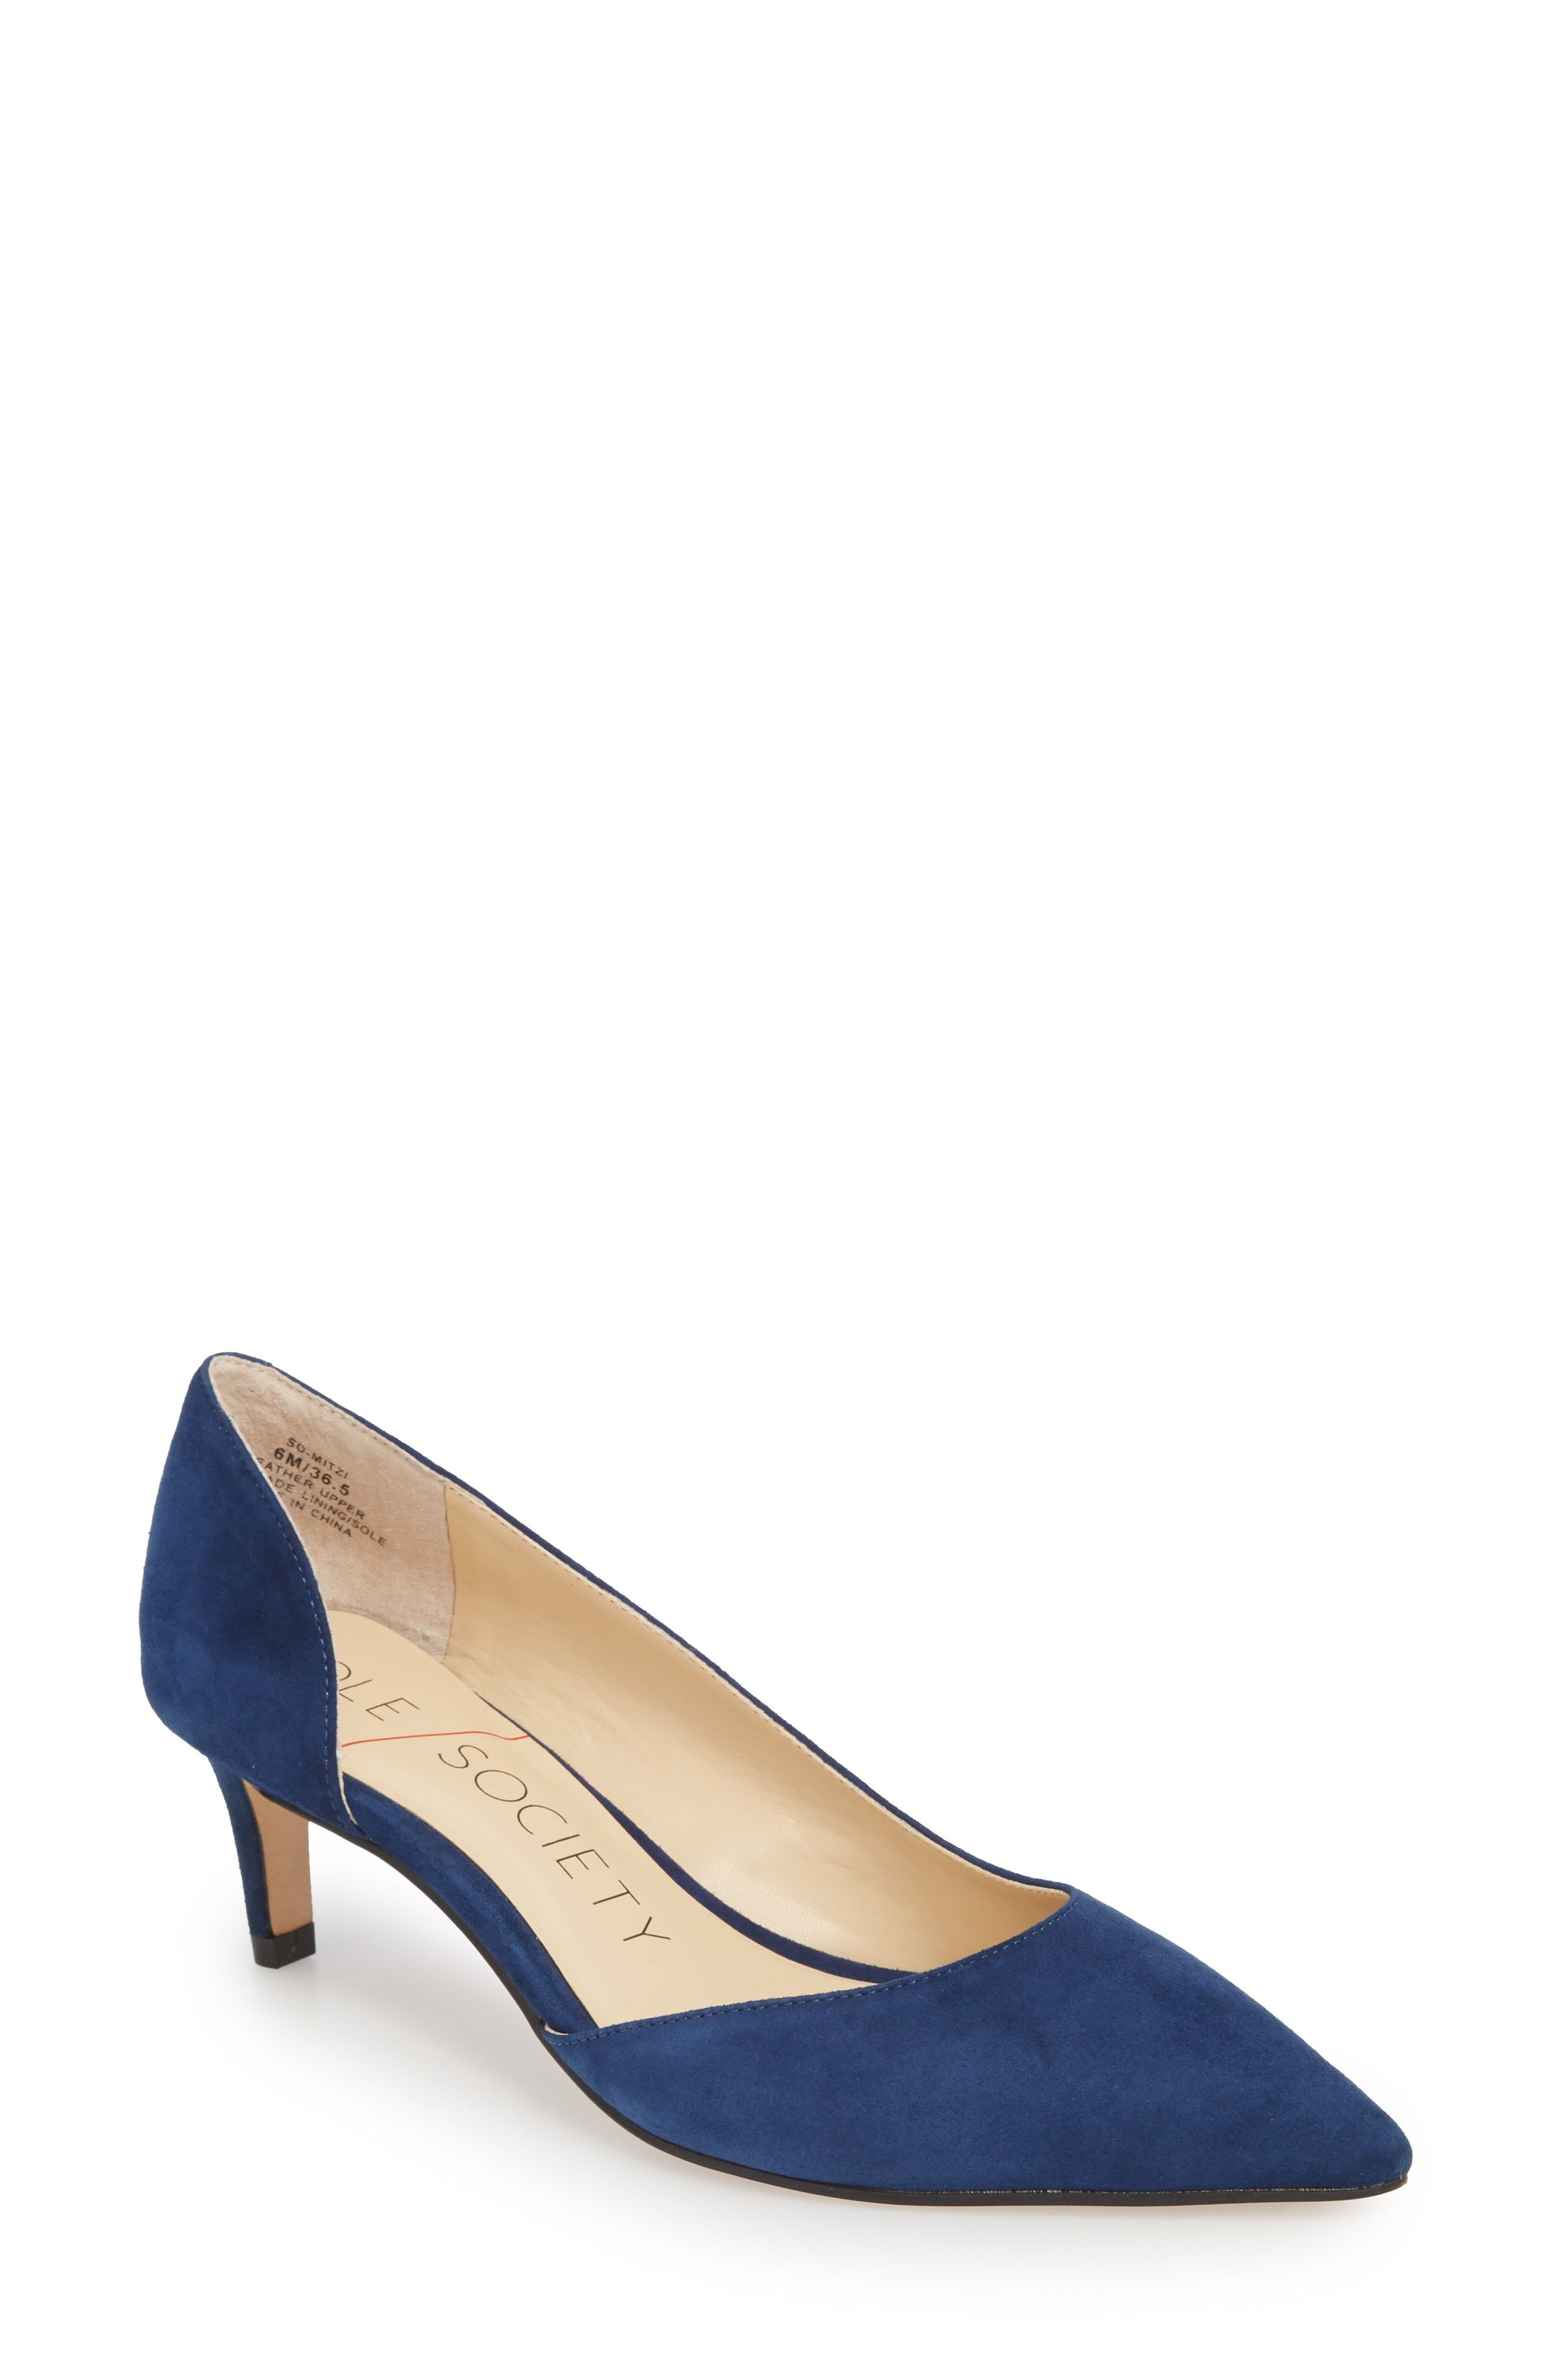 Sole Society Women's Mitzi Half D'Orsay Pump